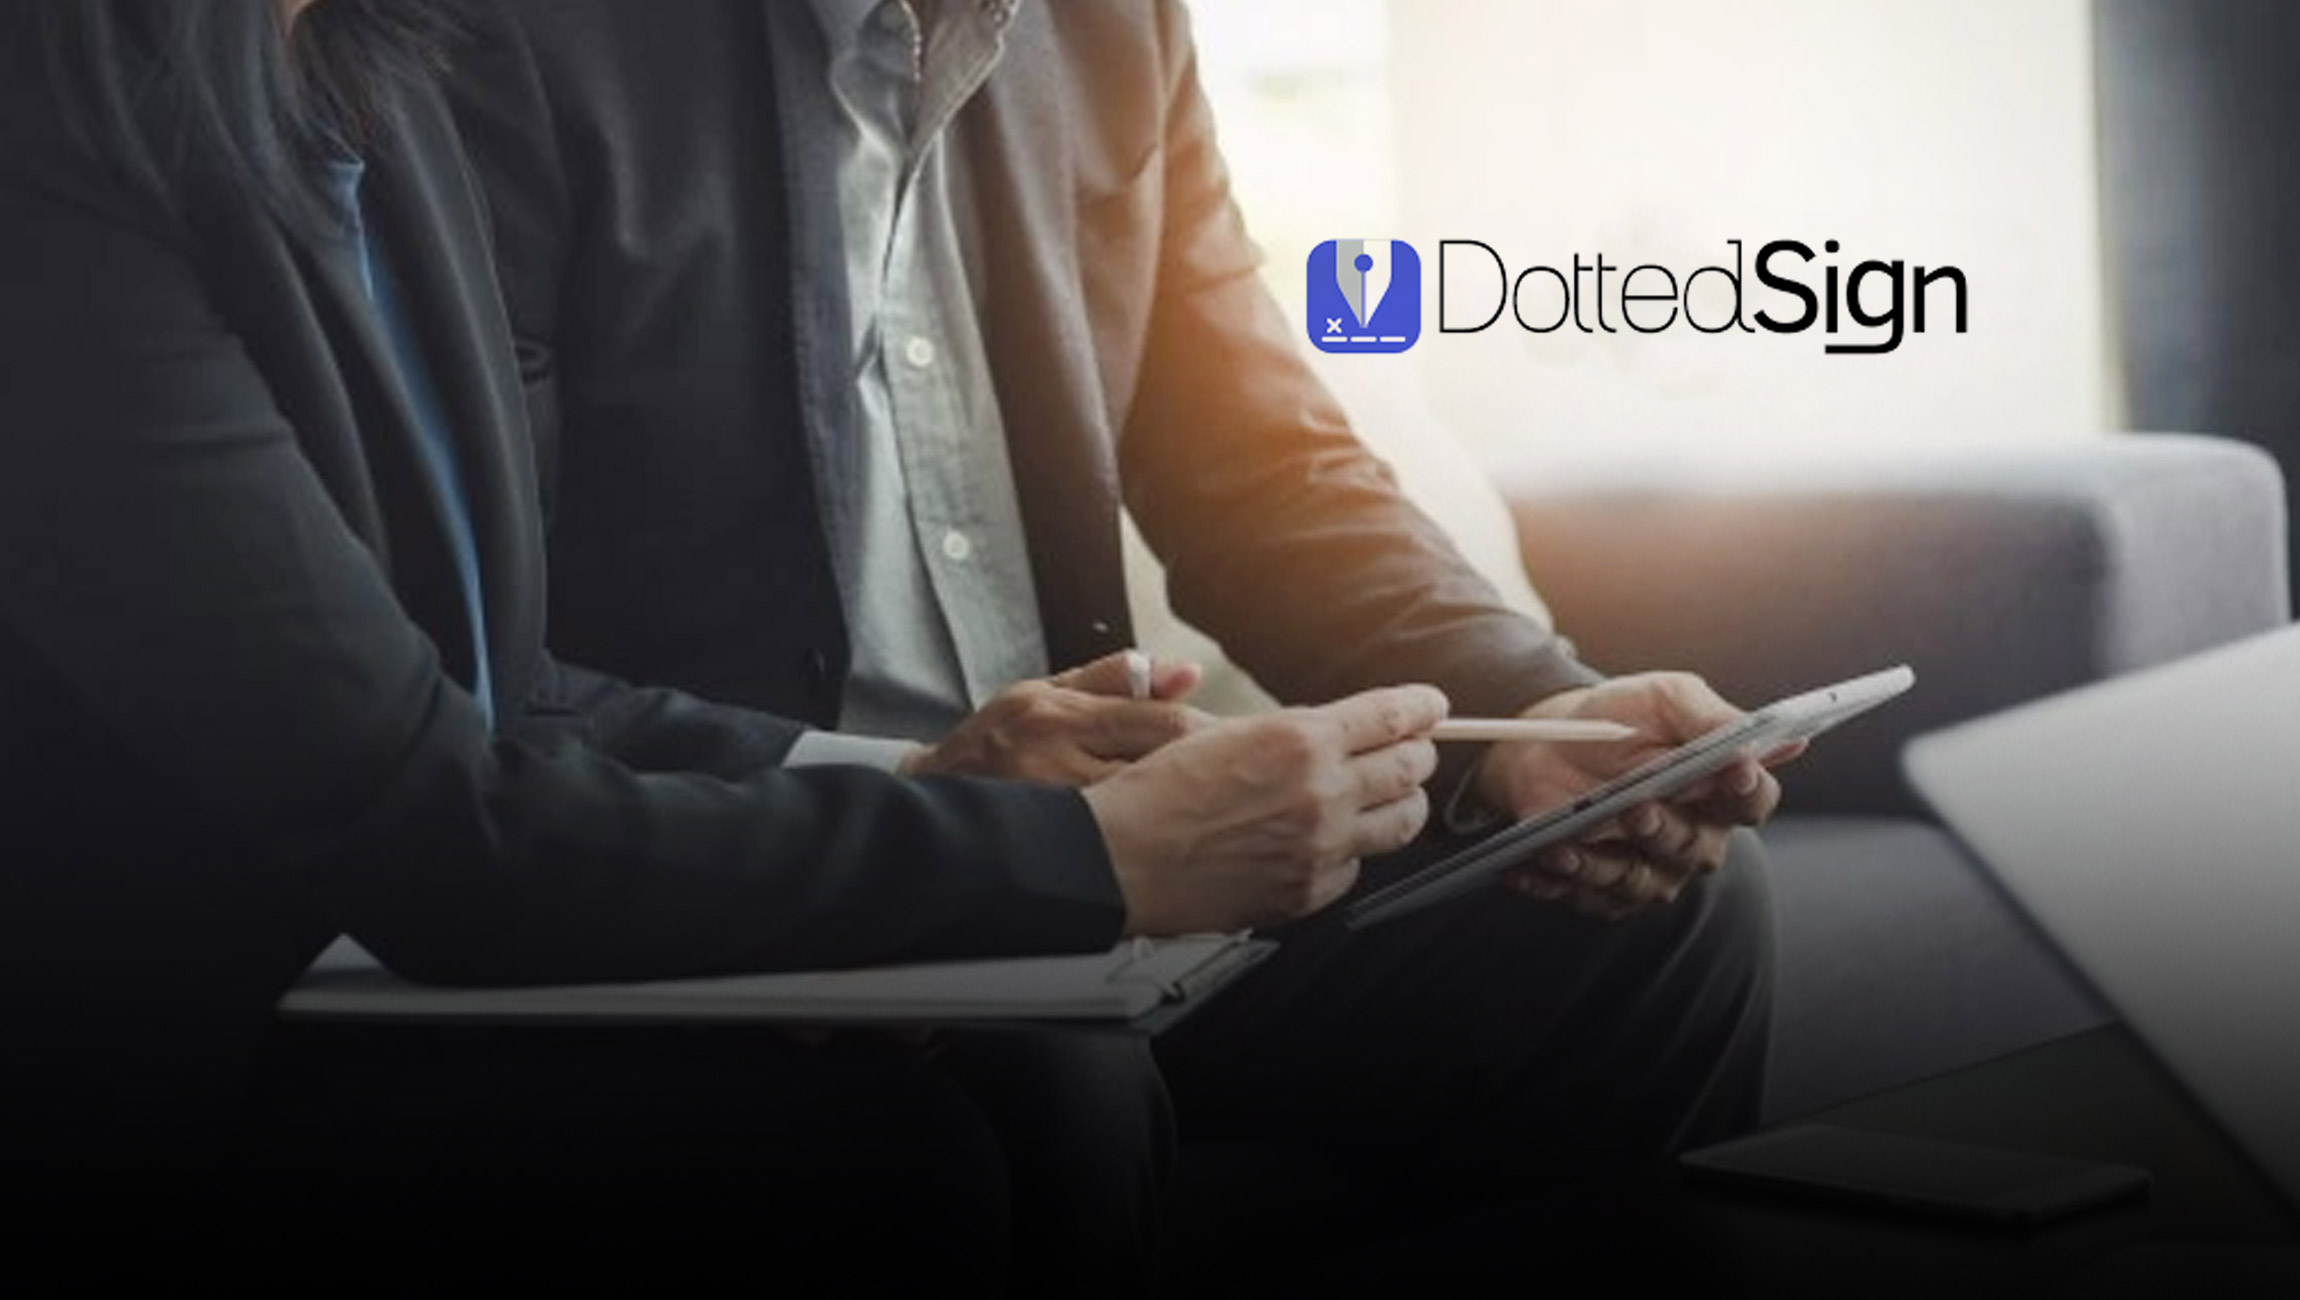 E-signature-Software_-DottedSign_-Has-Become-a-Game-Changer-With-Its-User-friendly-Interface-and-Intuitive-Features